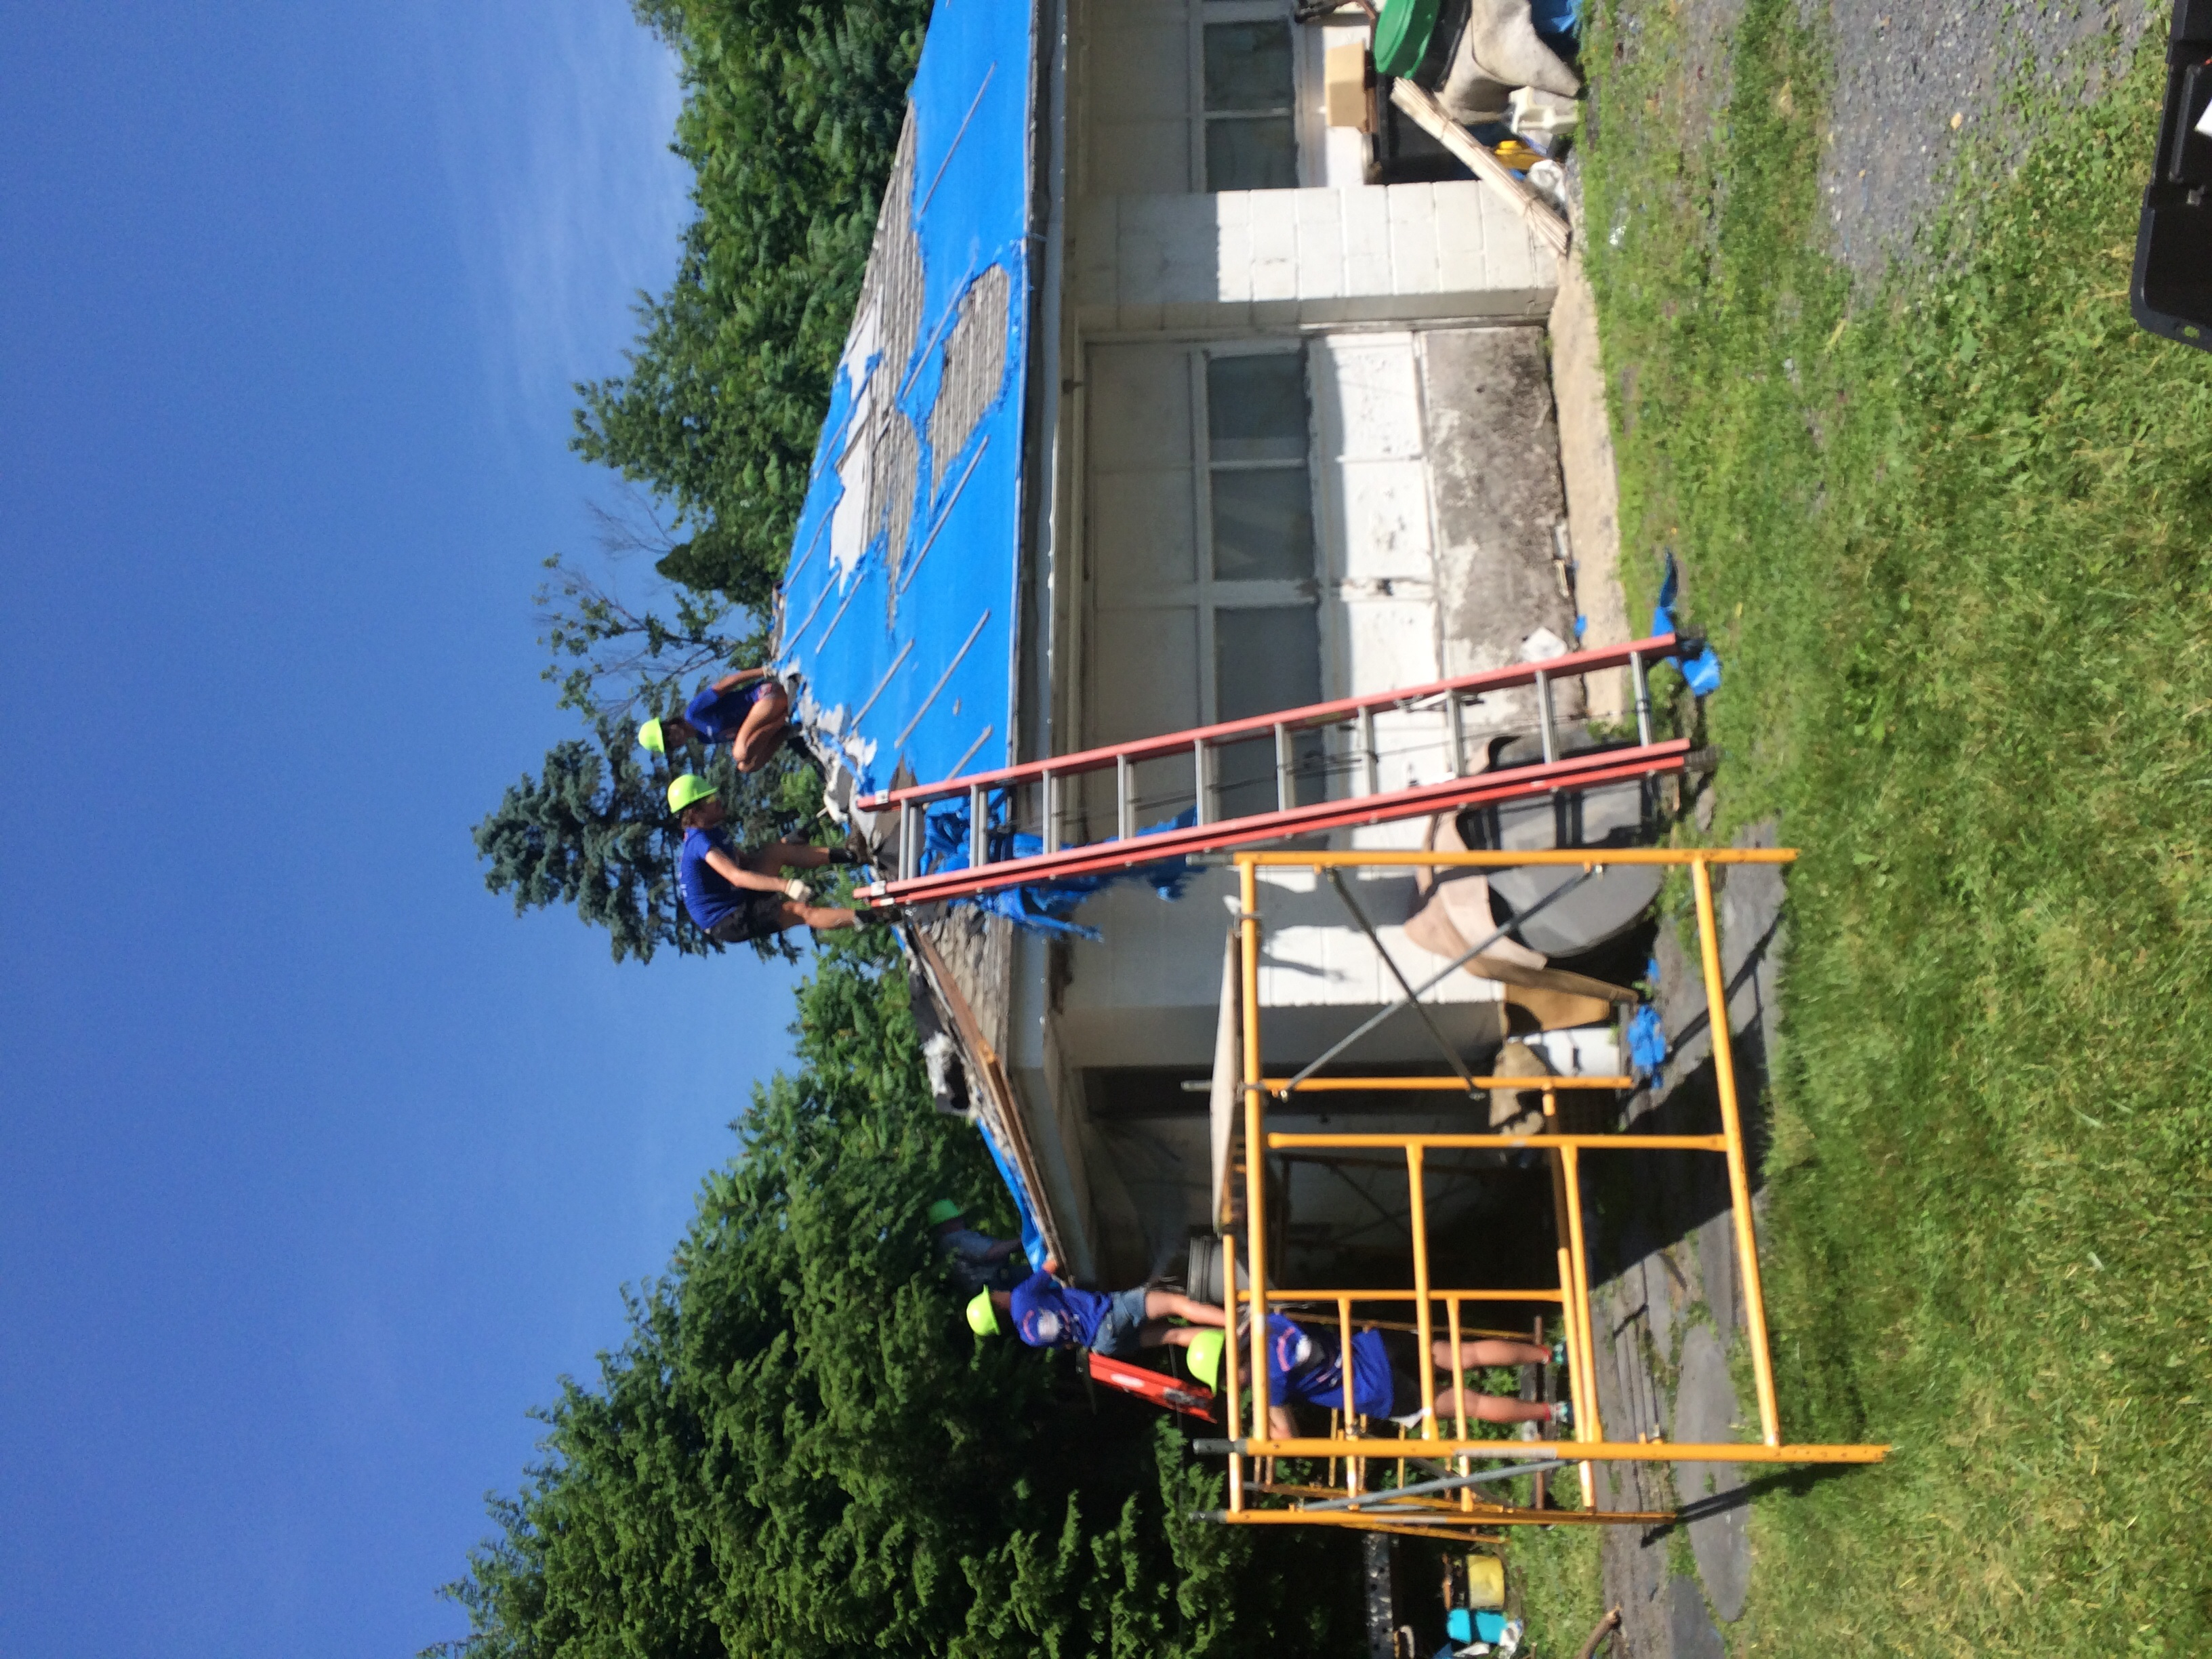 Build day- we removed the old roofing and put up a new one! That's me on the top!